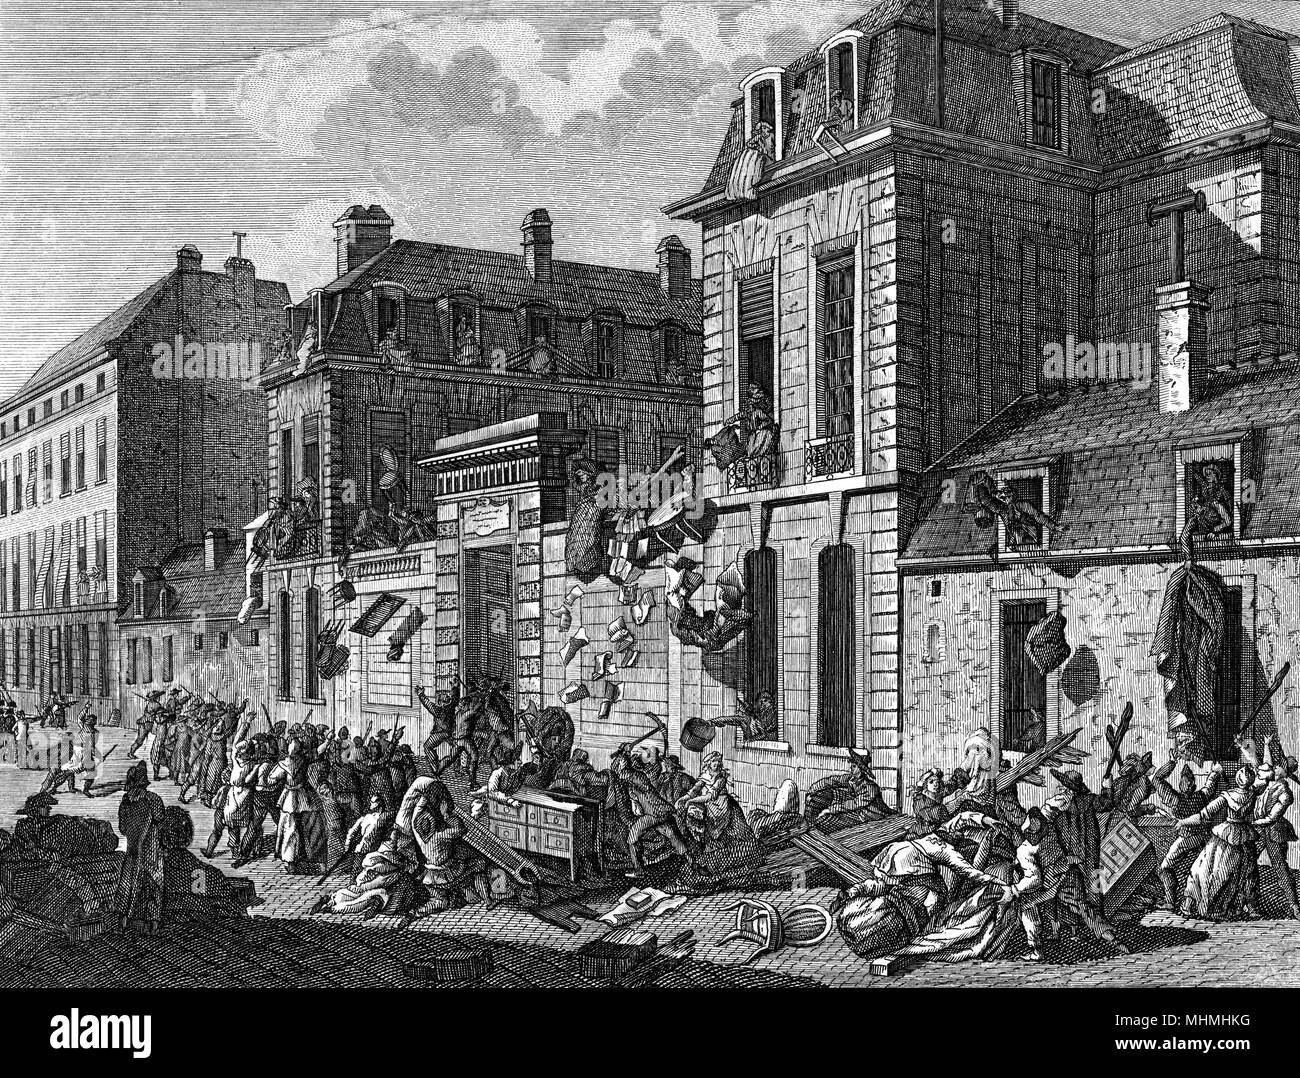 The homes of aristocrats at Saint-Germain-en-Laye, on the outskirts of Paris, are attacked and plundered by revolutionary crowds      Date: 13 November 1790 - Stock Image